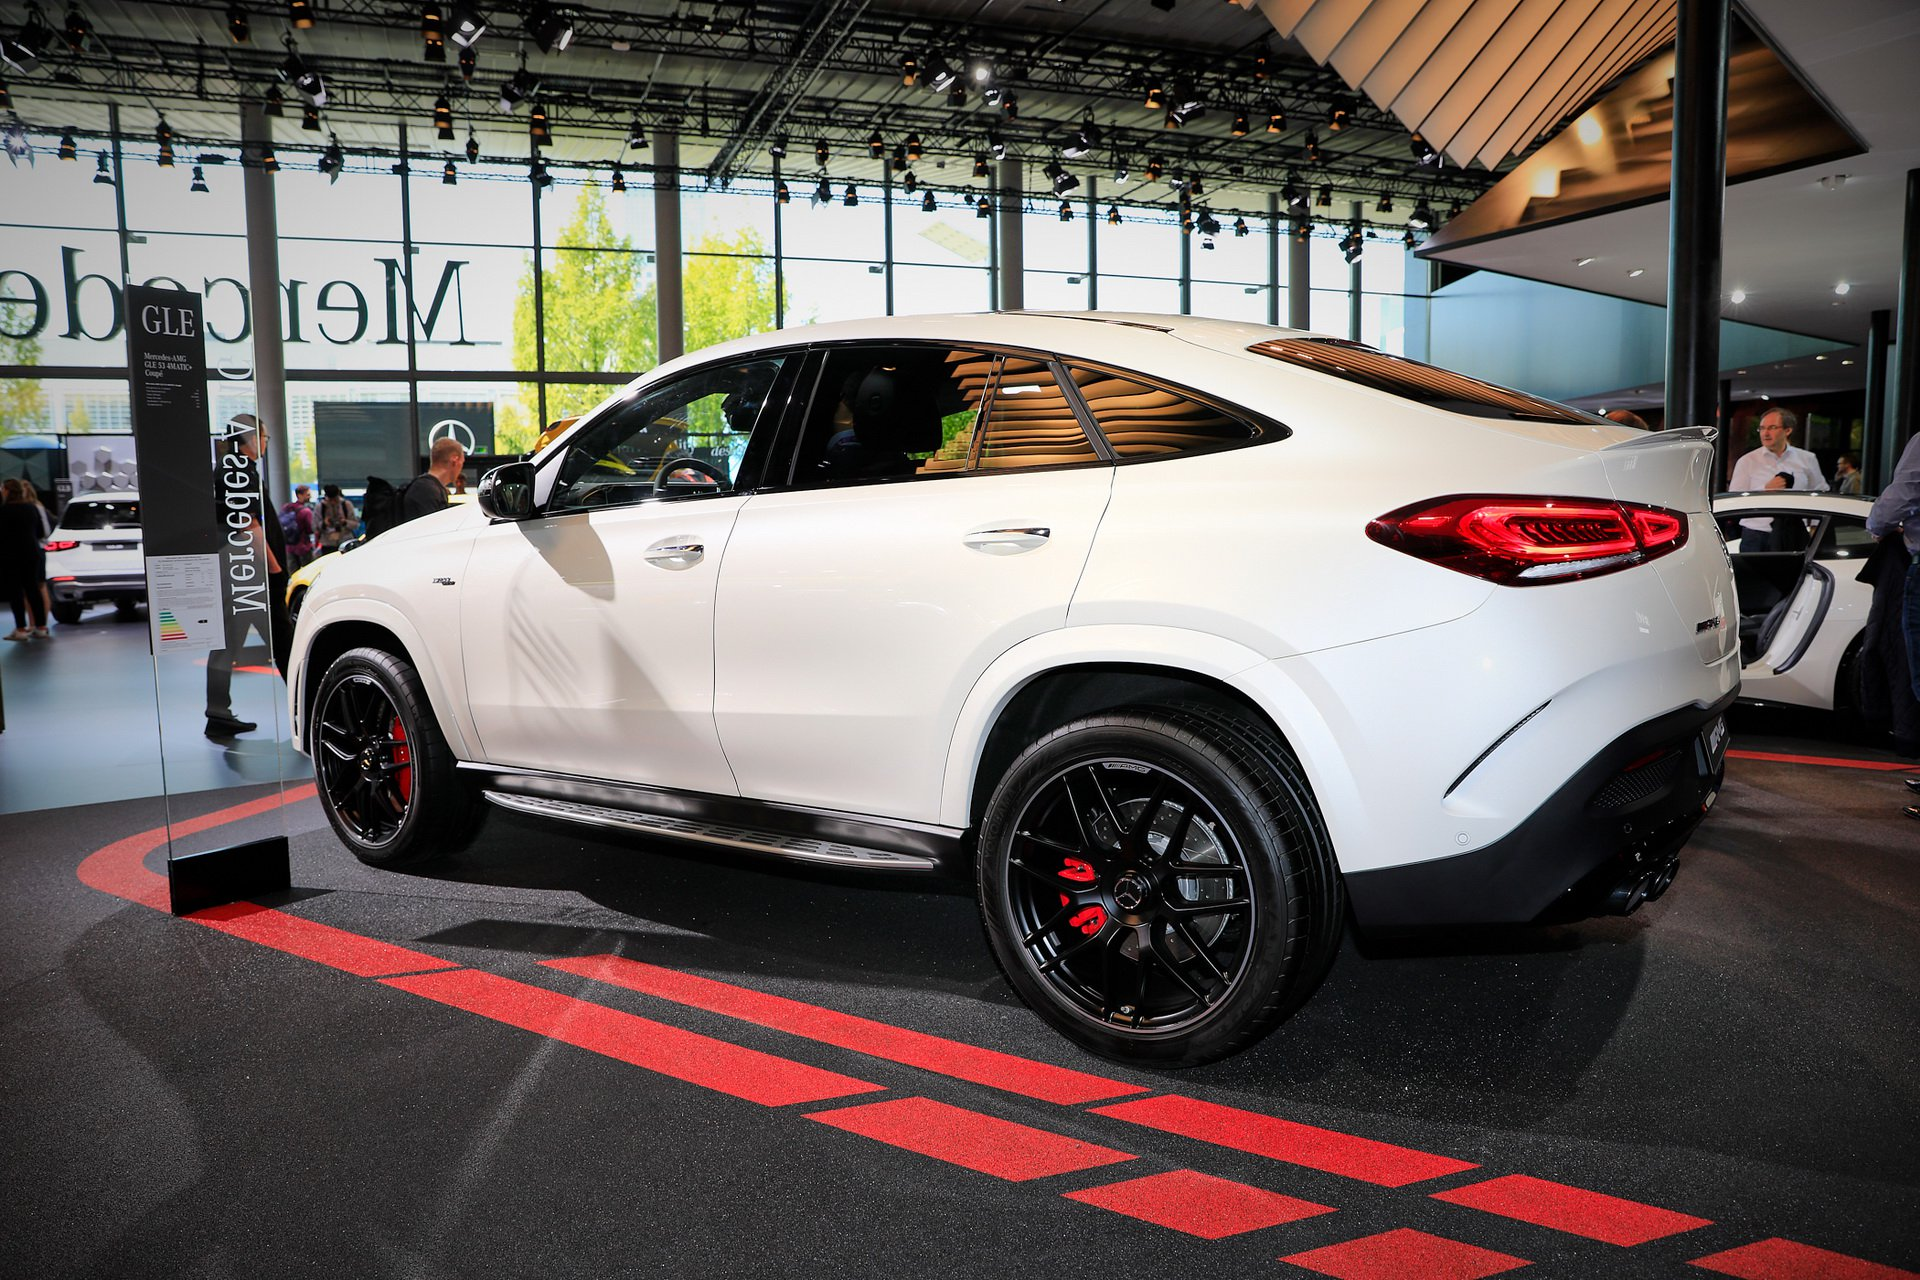 Mercedes AMG GLE 53 Coupe